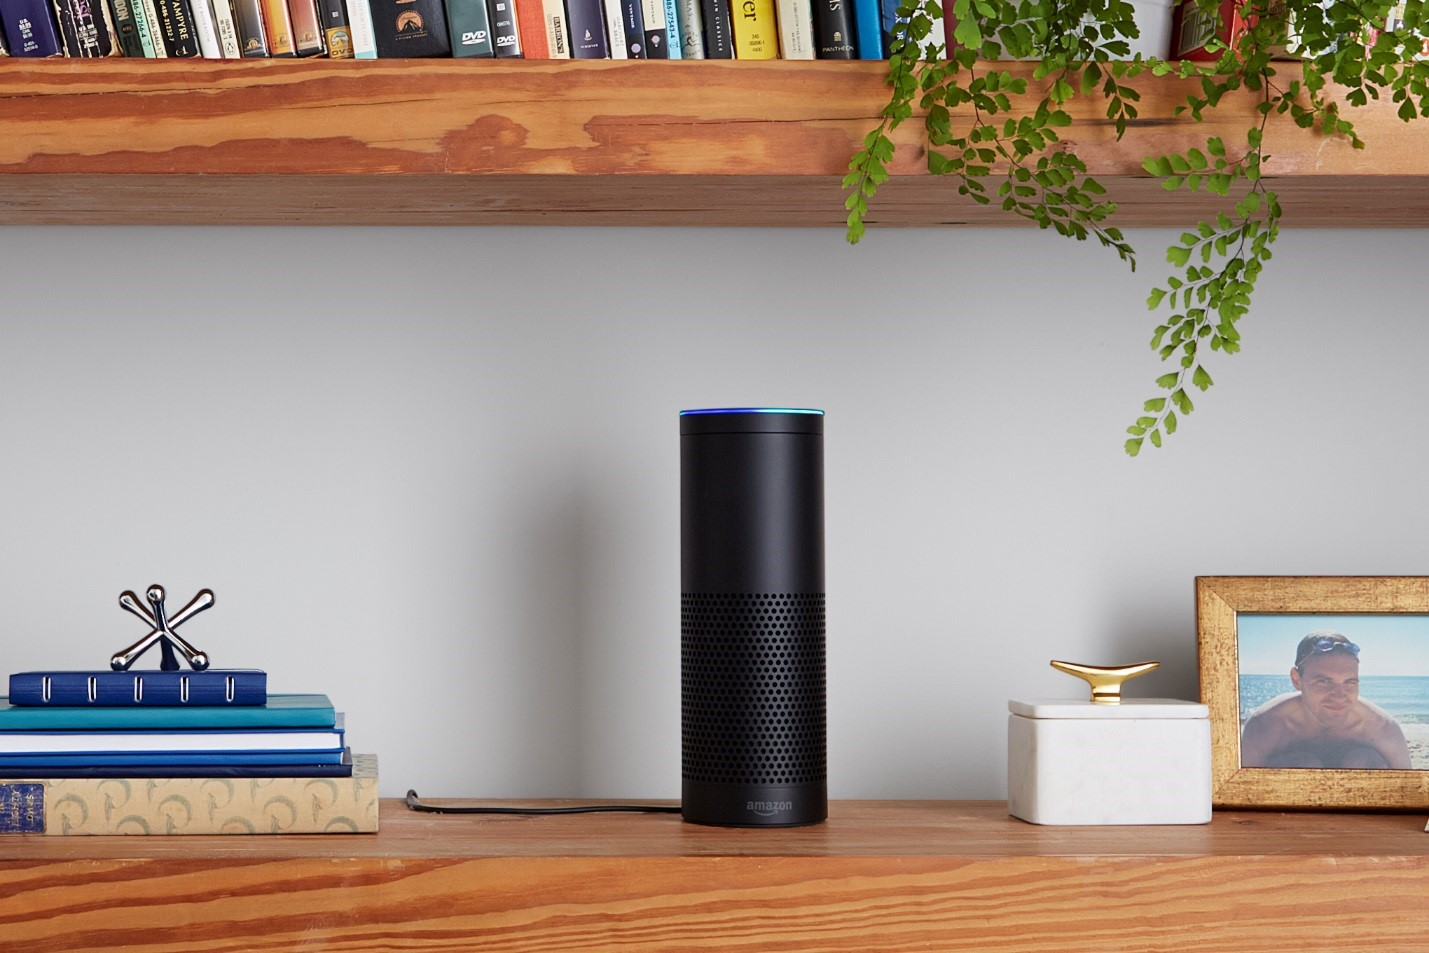 Will We Ever See Voice Control for Commercial Automation?